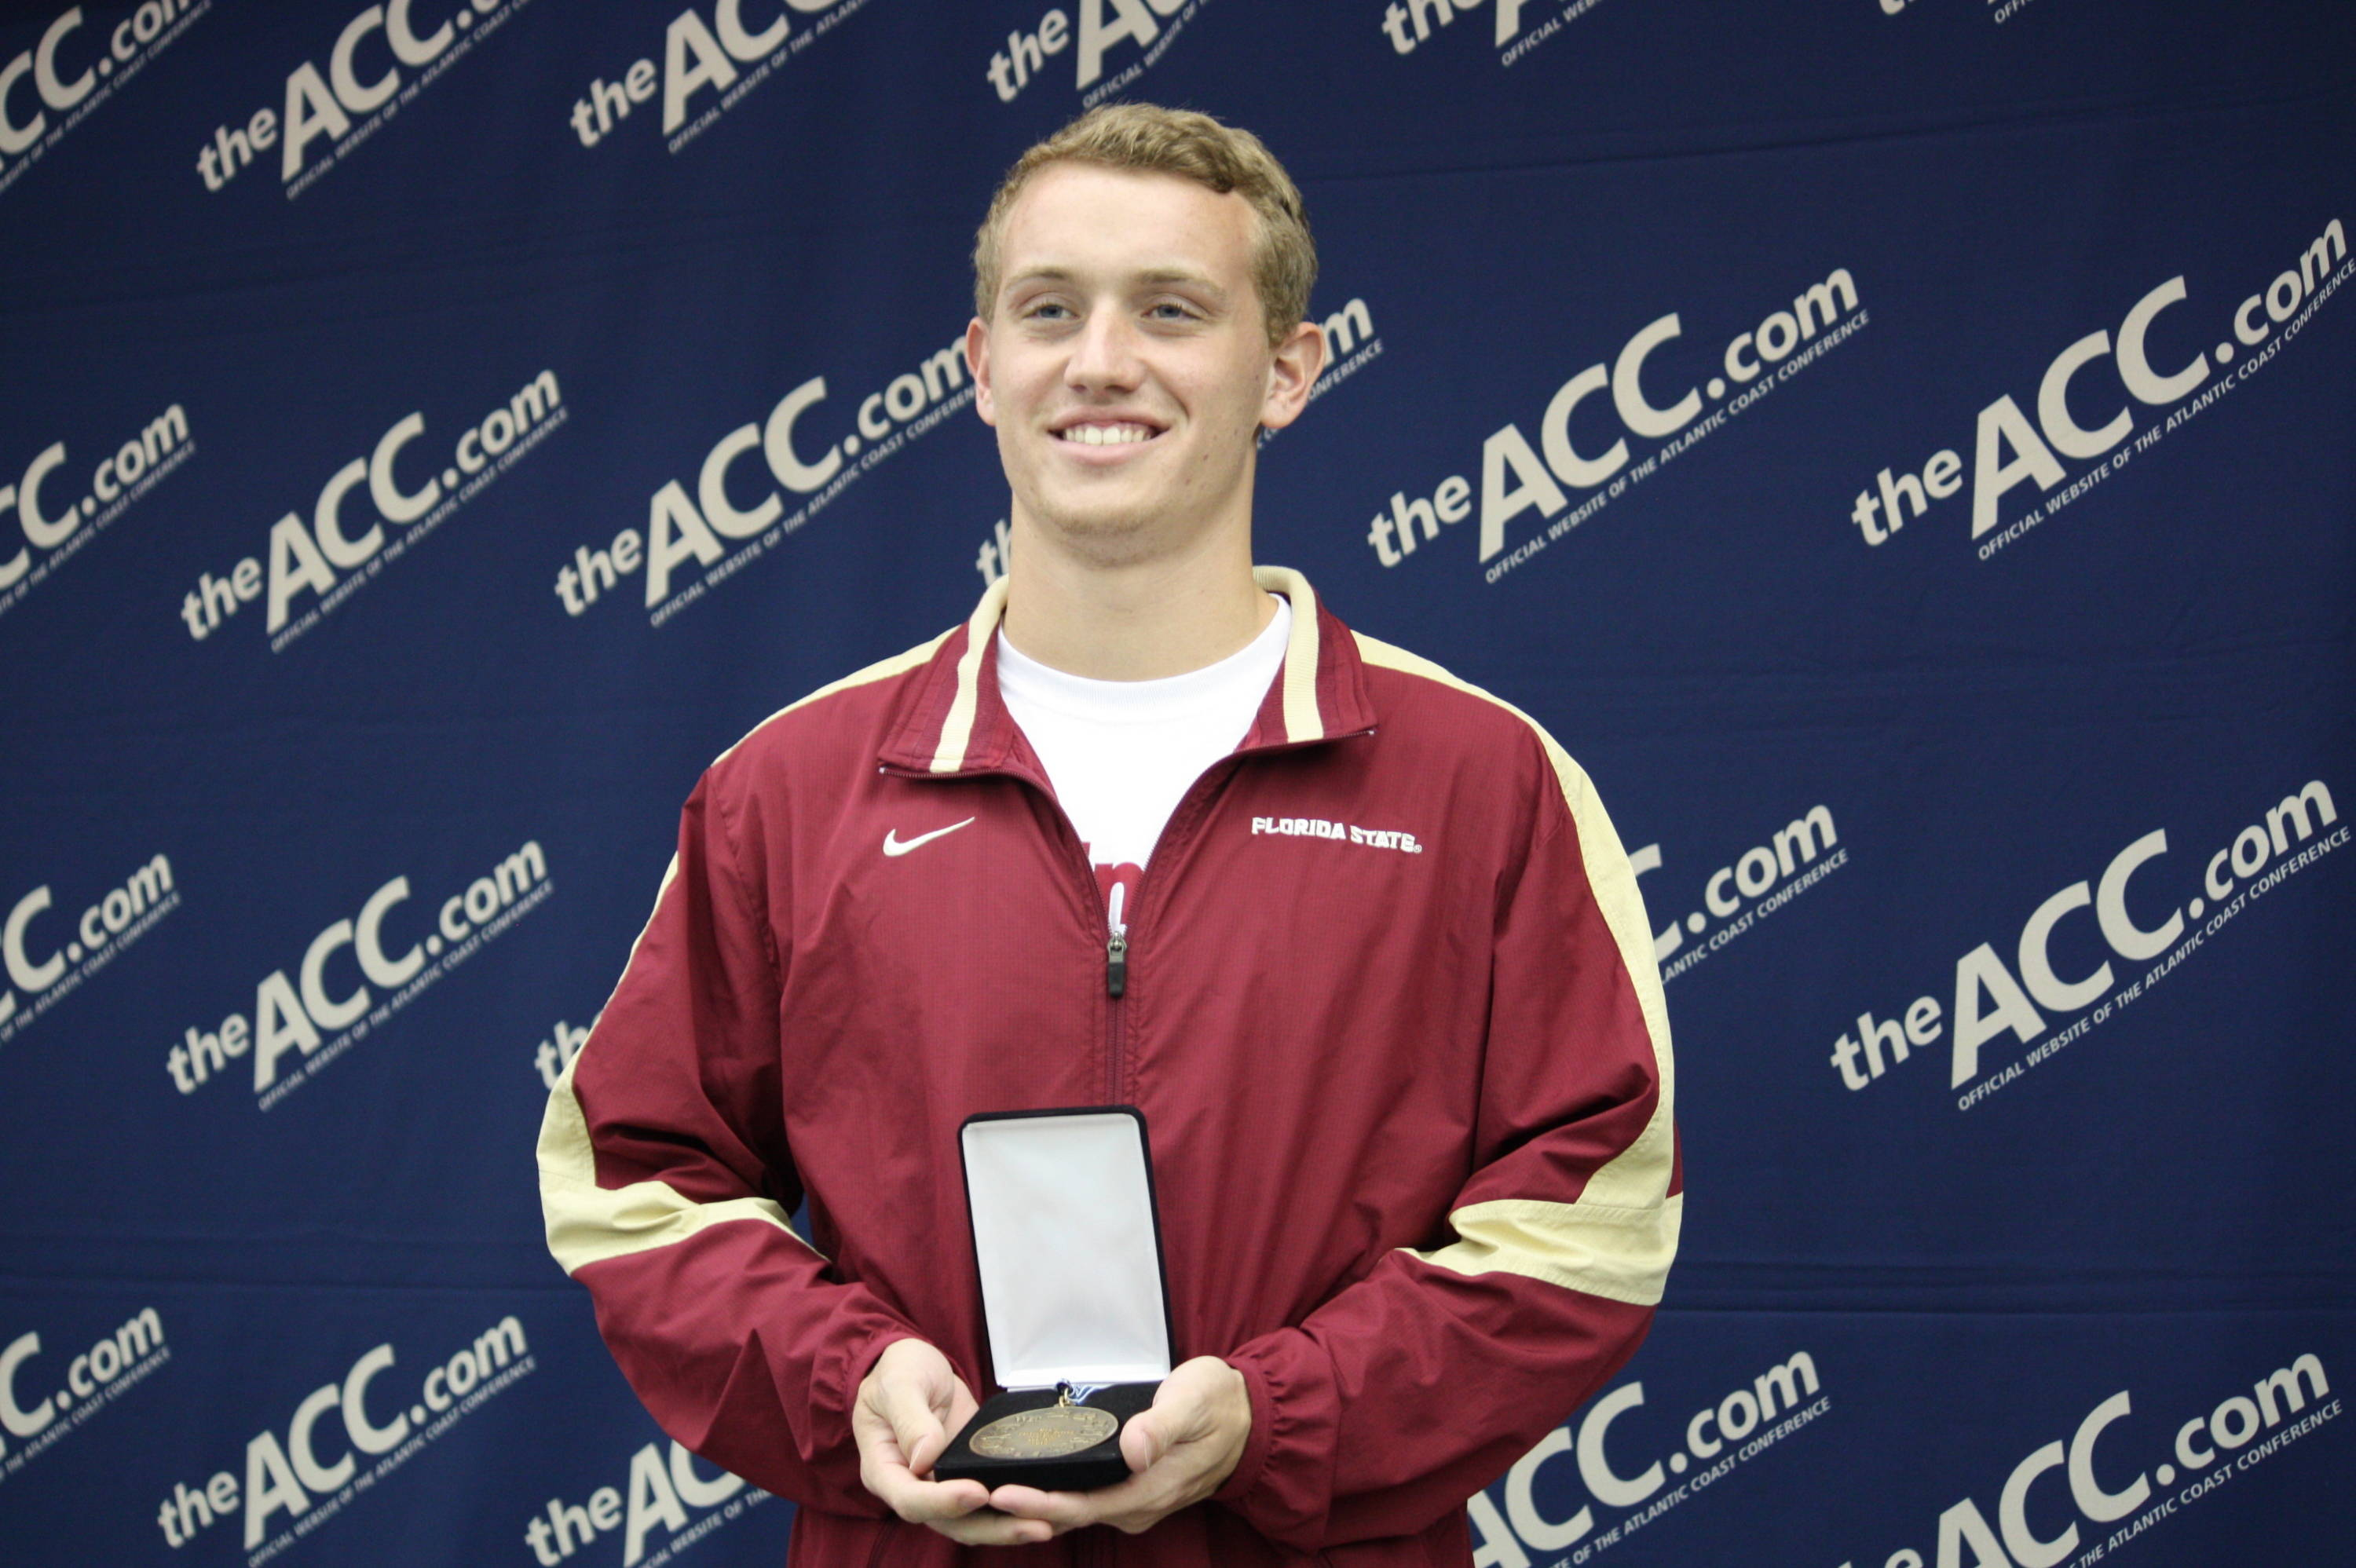 Junior Nick Klein grabs the bronze medal in the men's platform event.